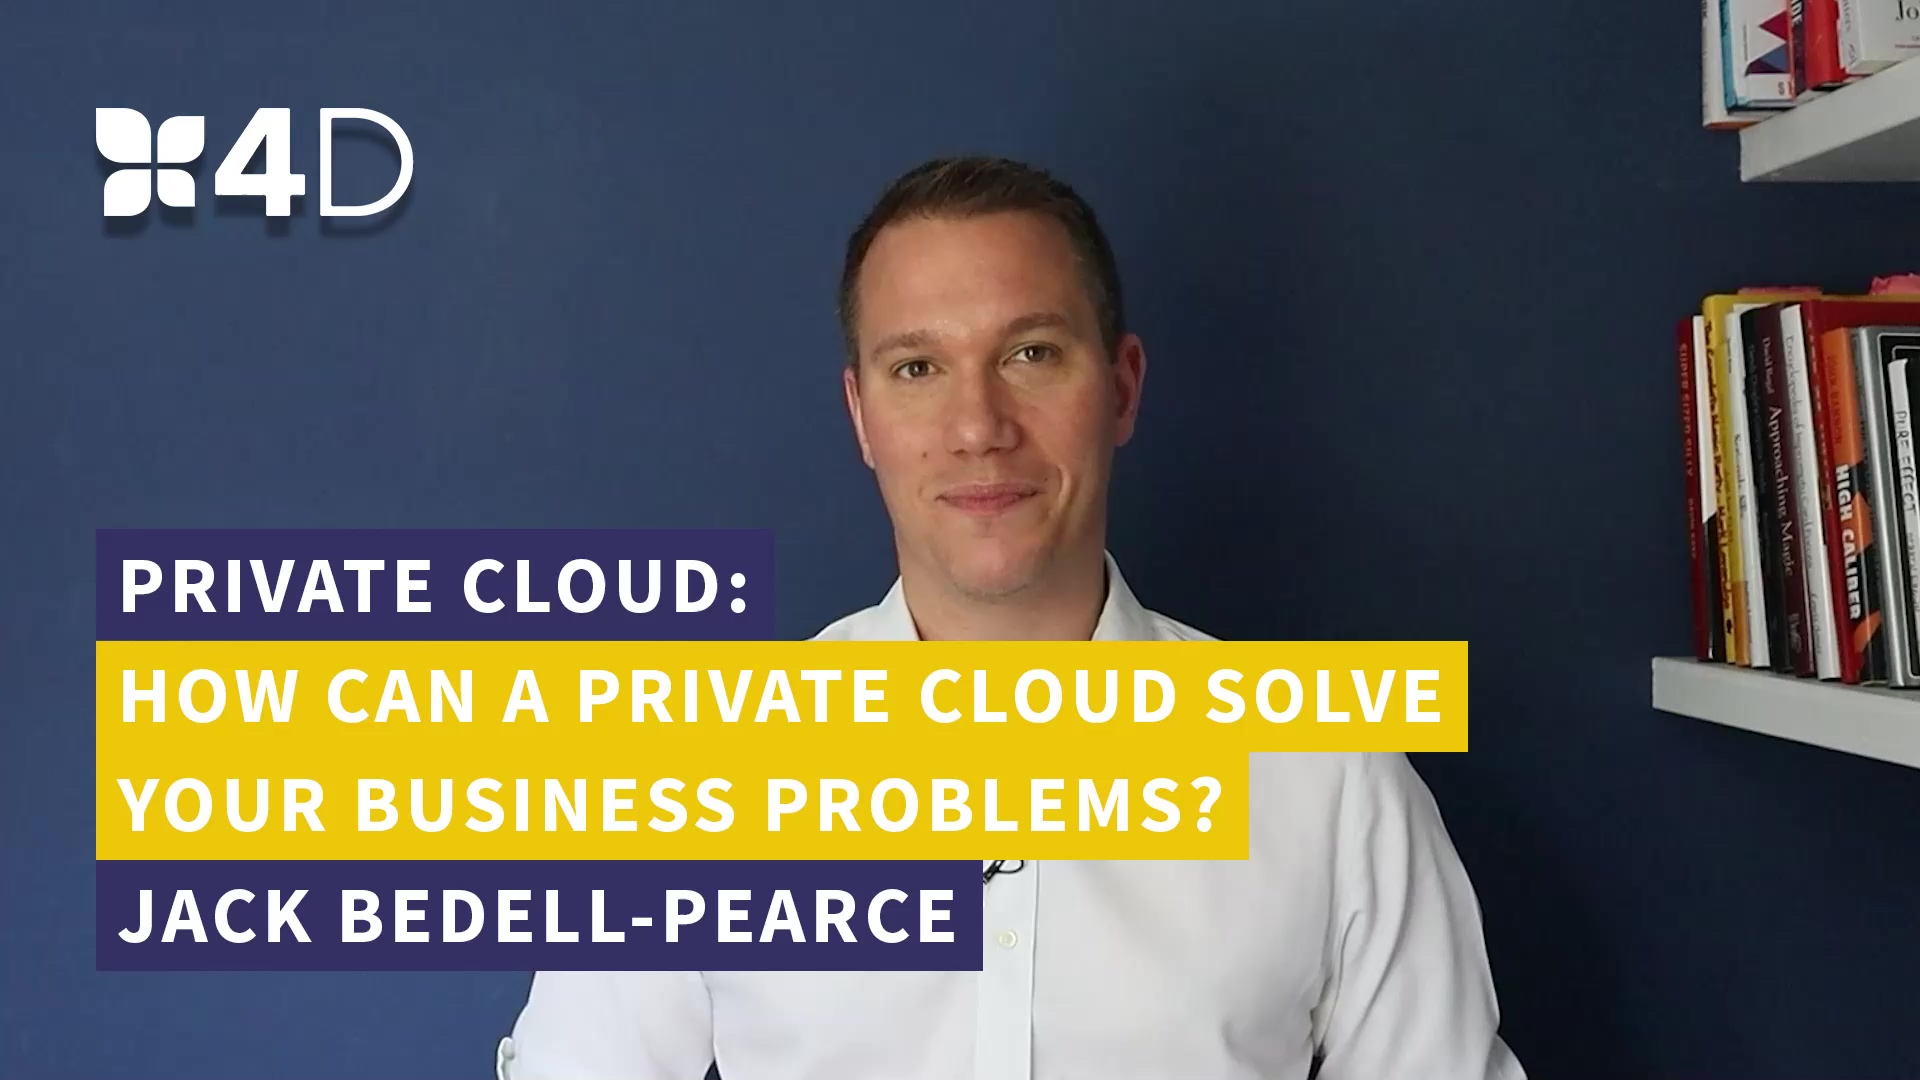 4D - How can a Private Cloud Solve Your Business Problems